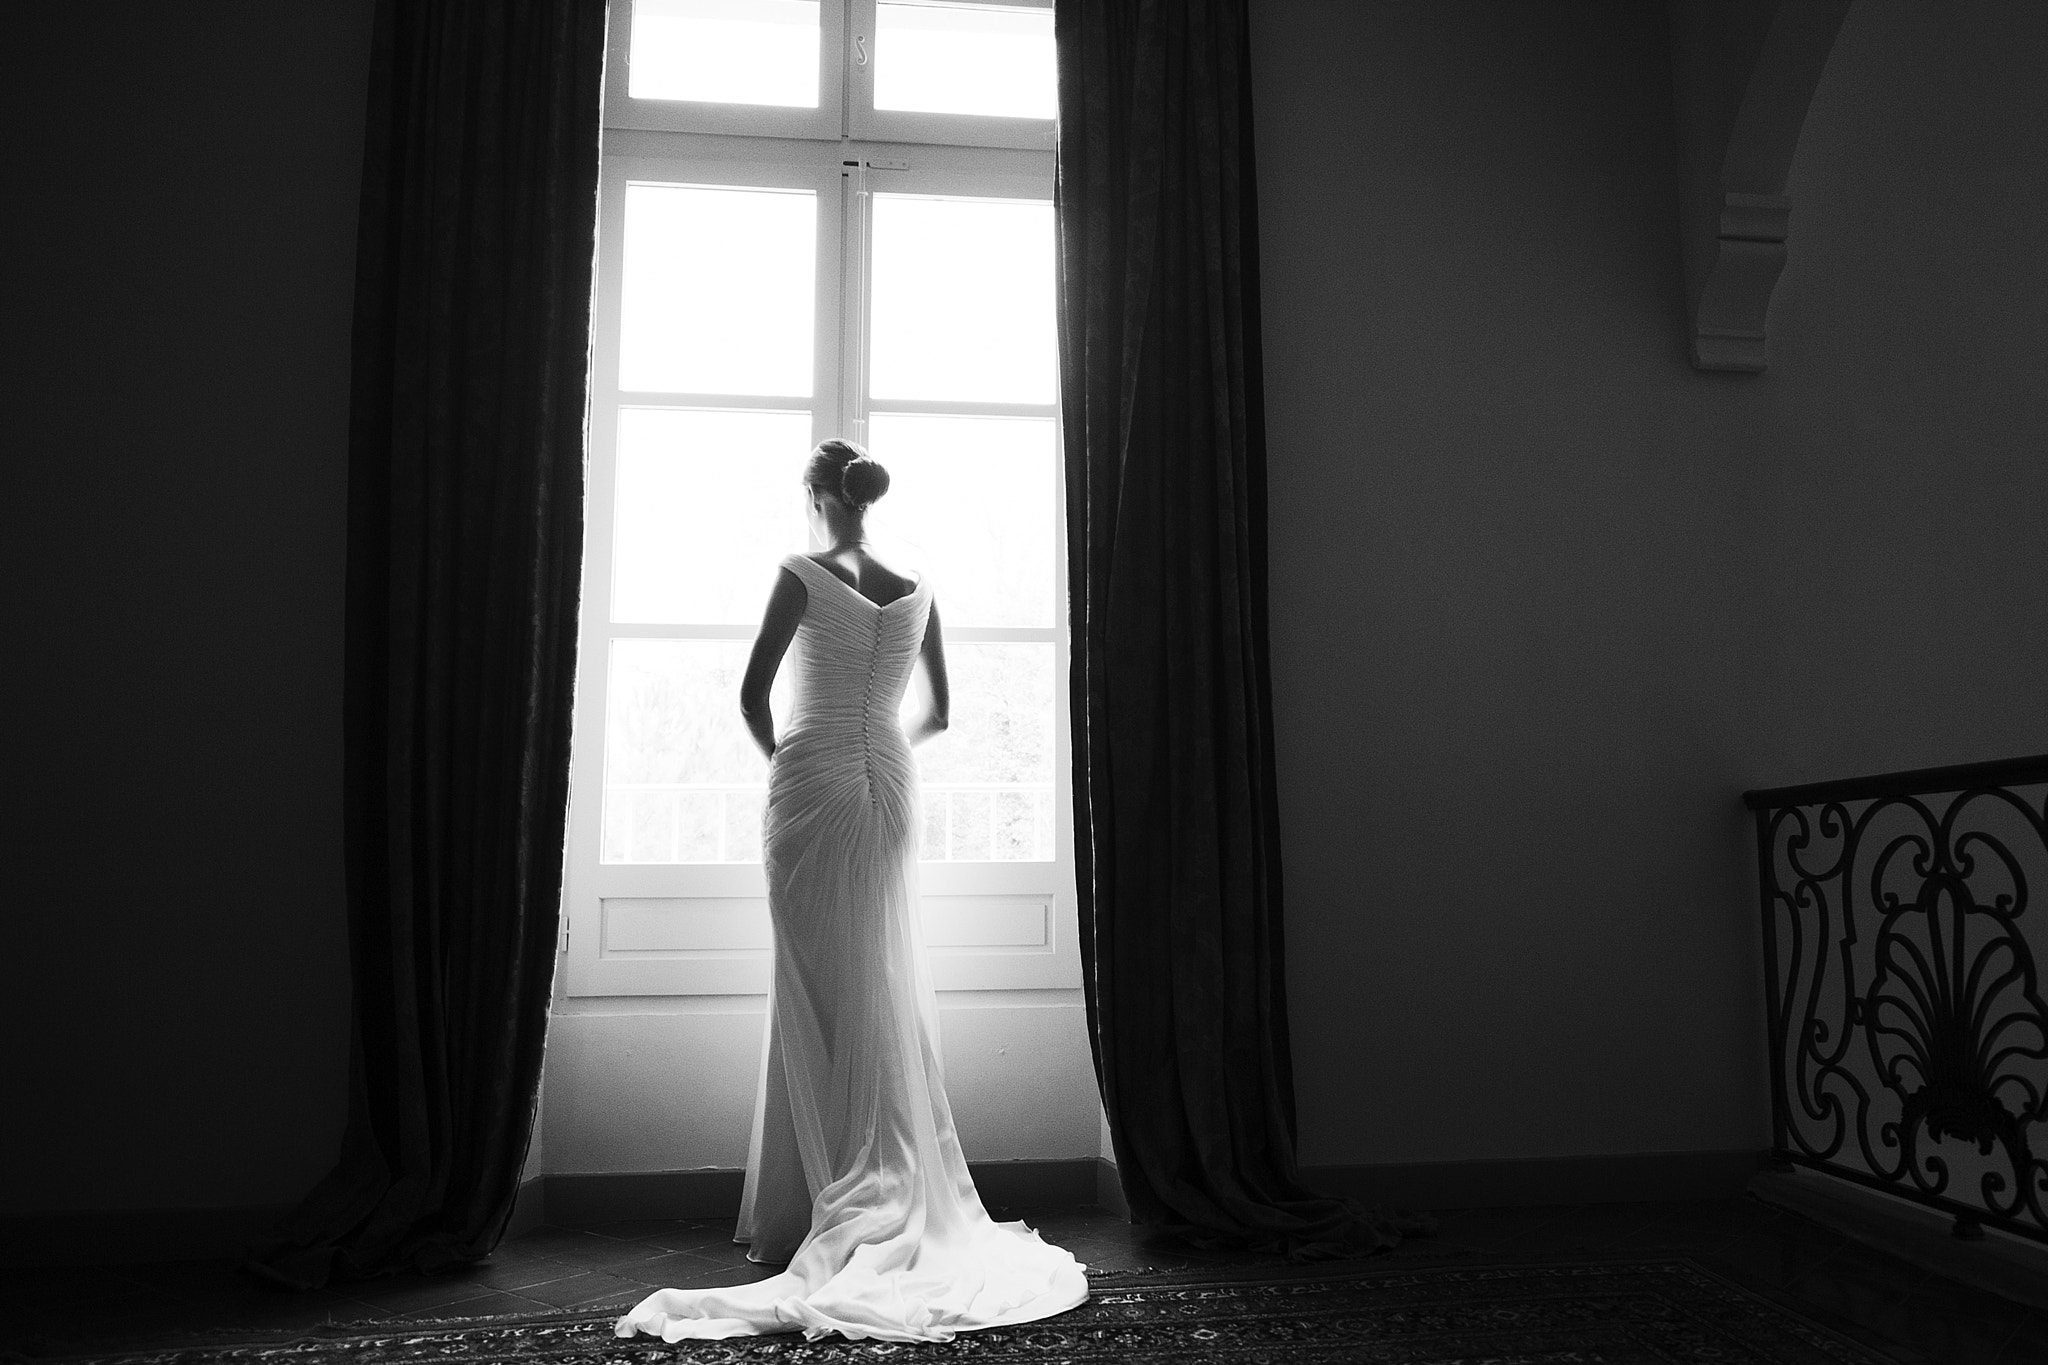 Photograph bride at the window by Cathy Dudzinski on 500px